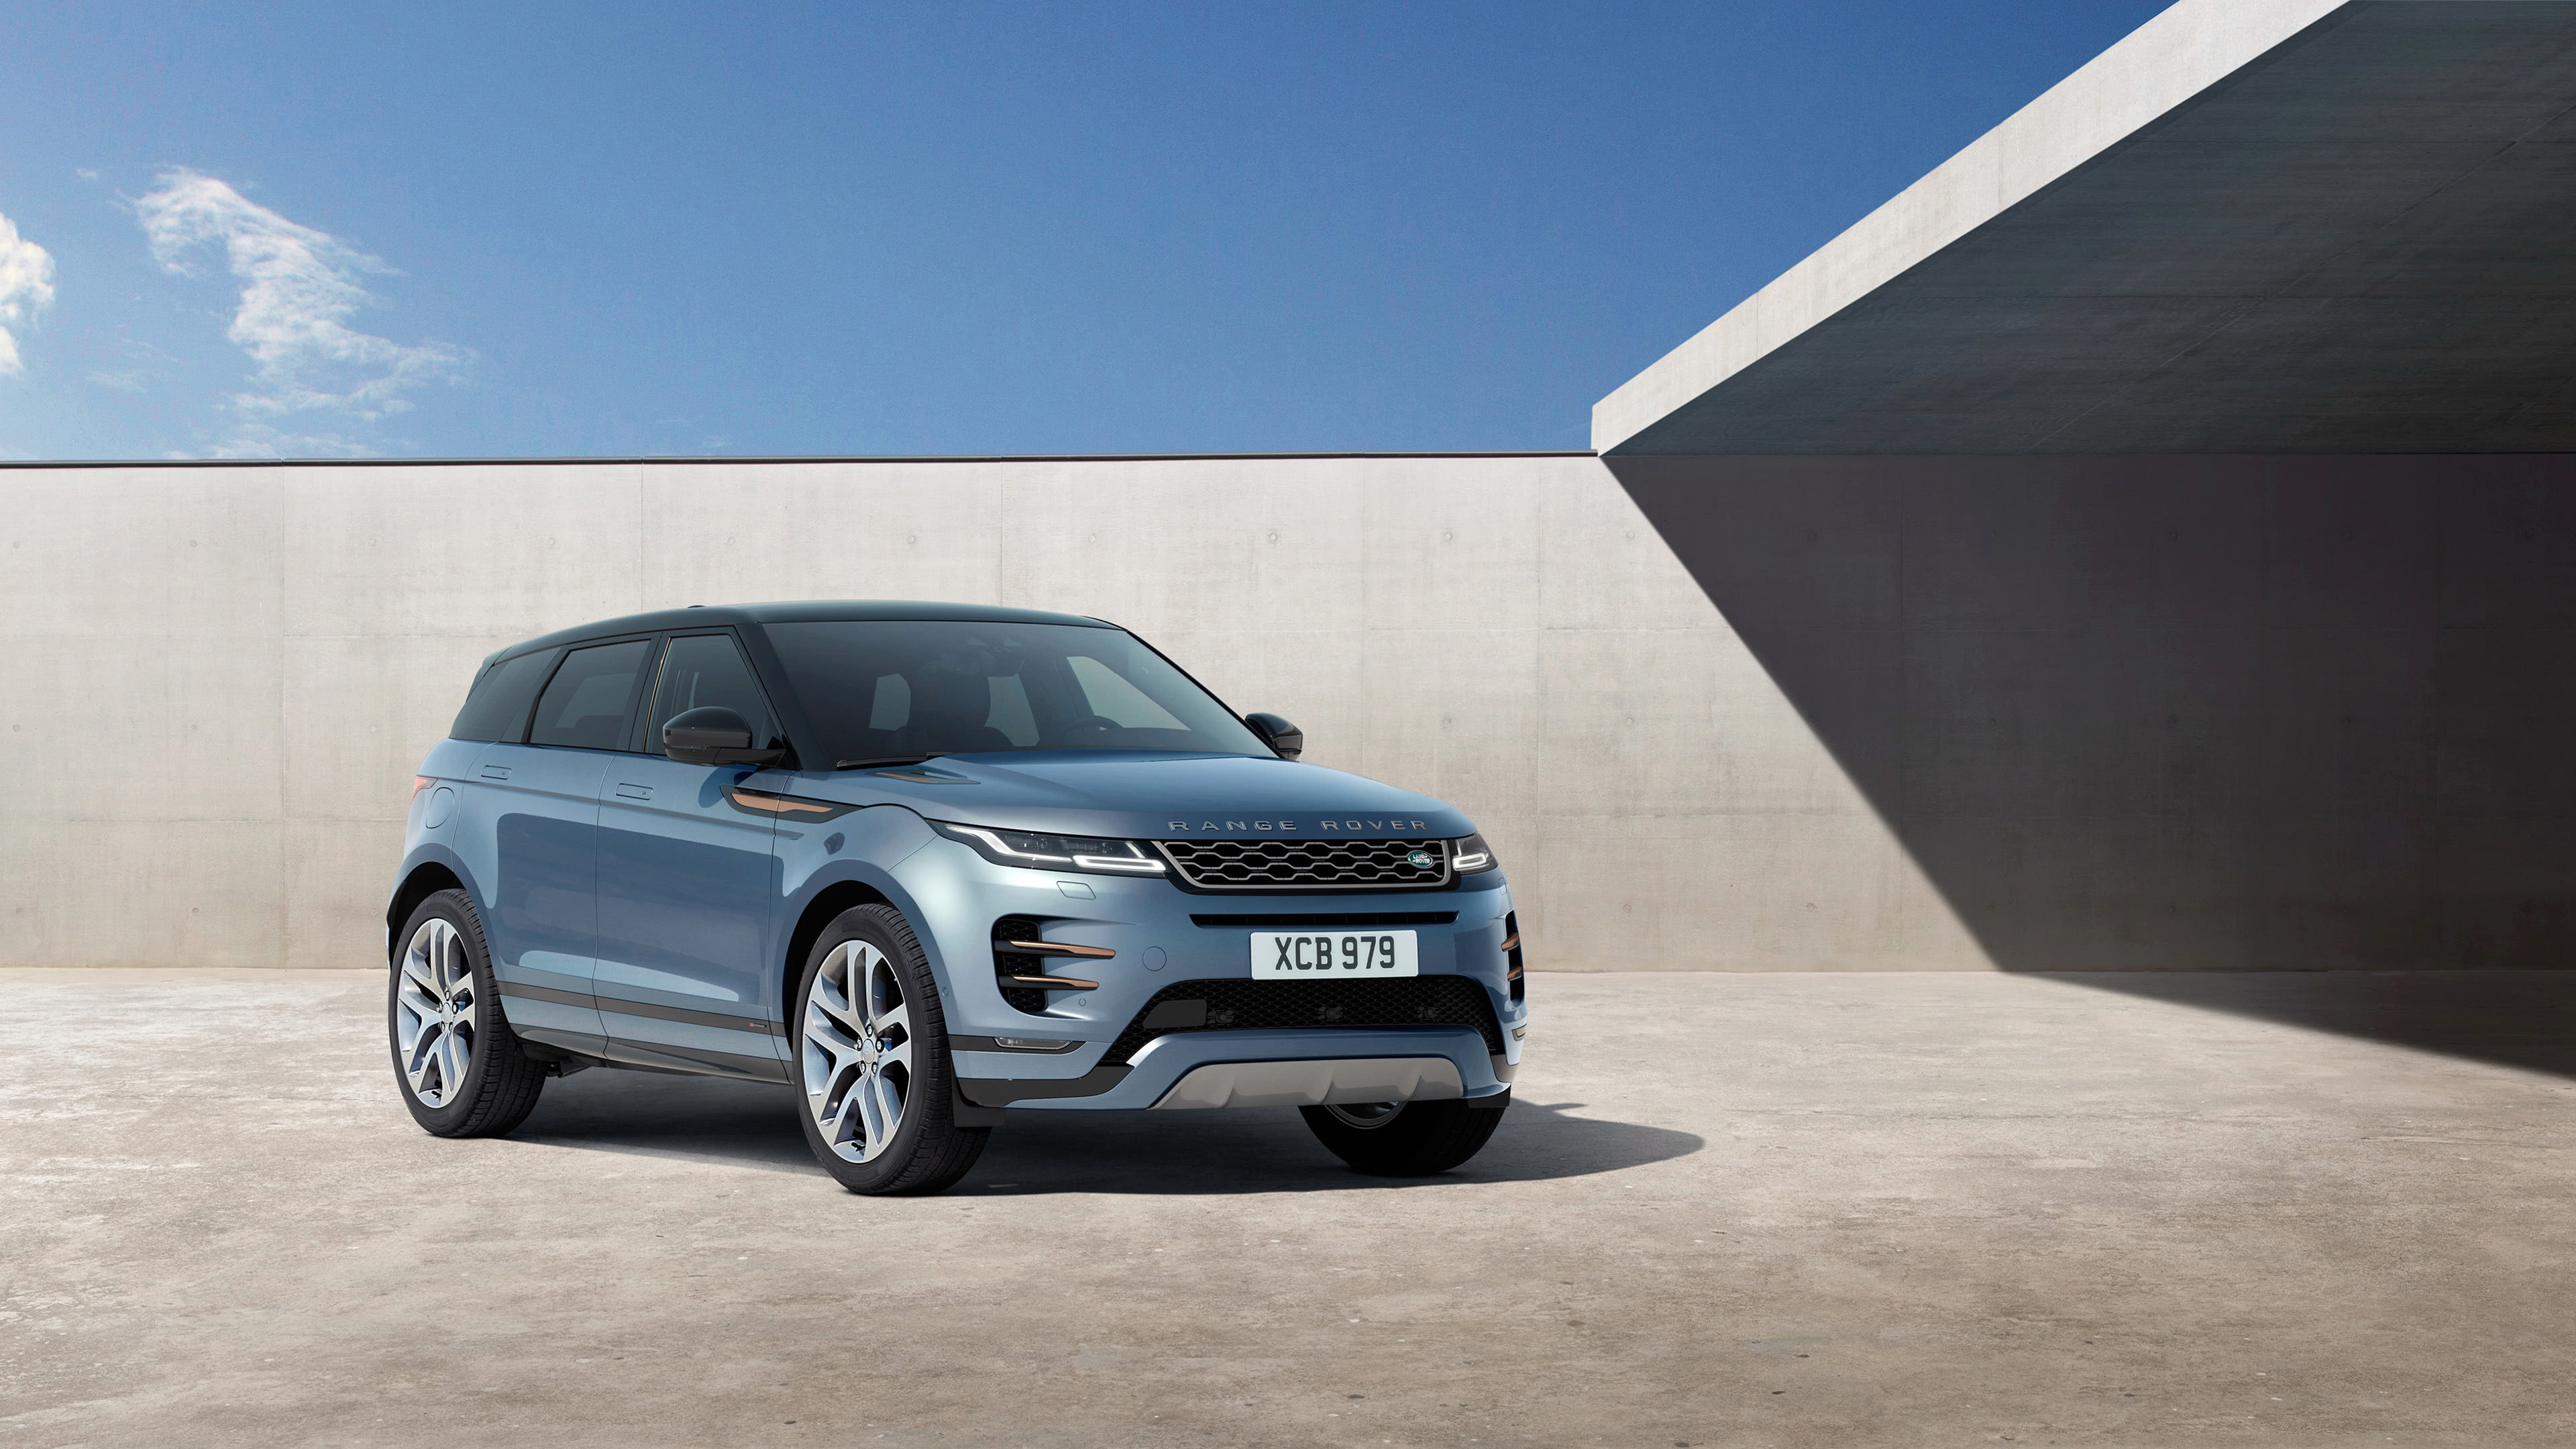 land rover range rover evoque 2020 uhd 4k wallpaper